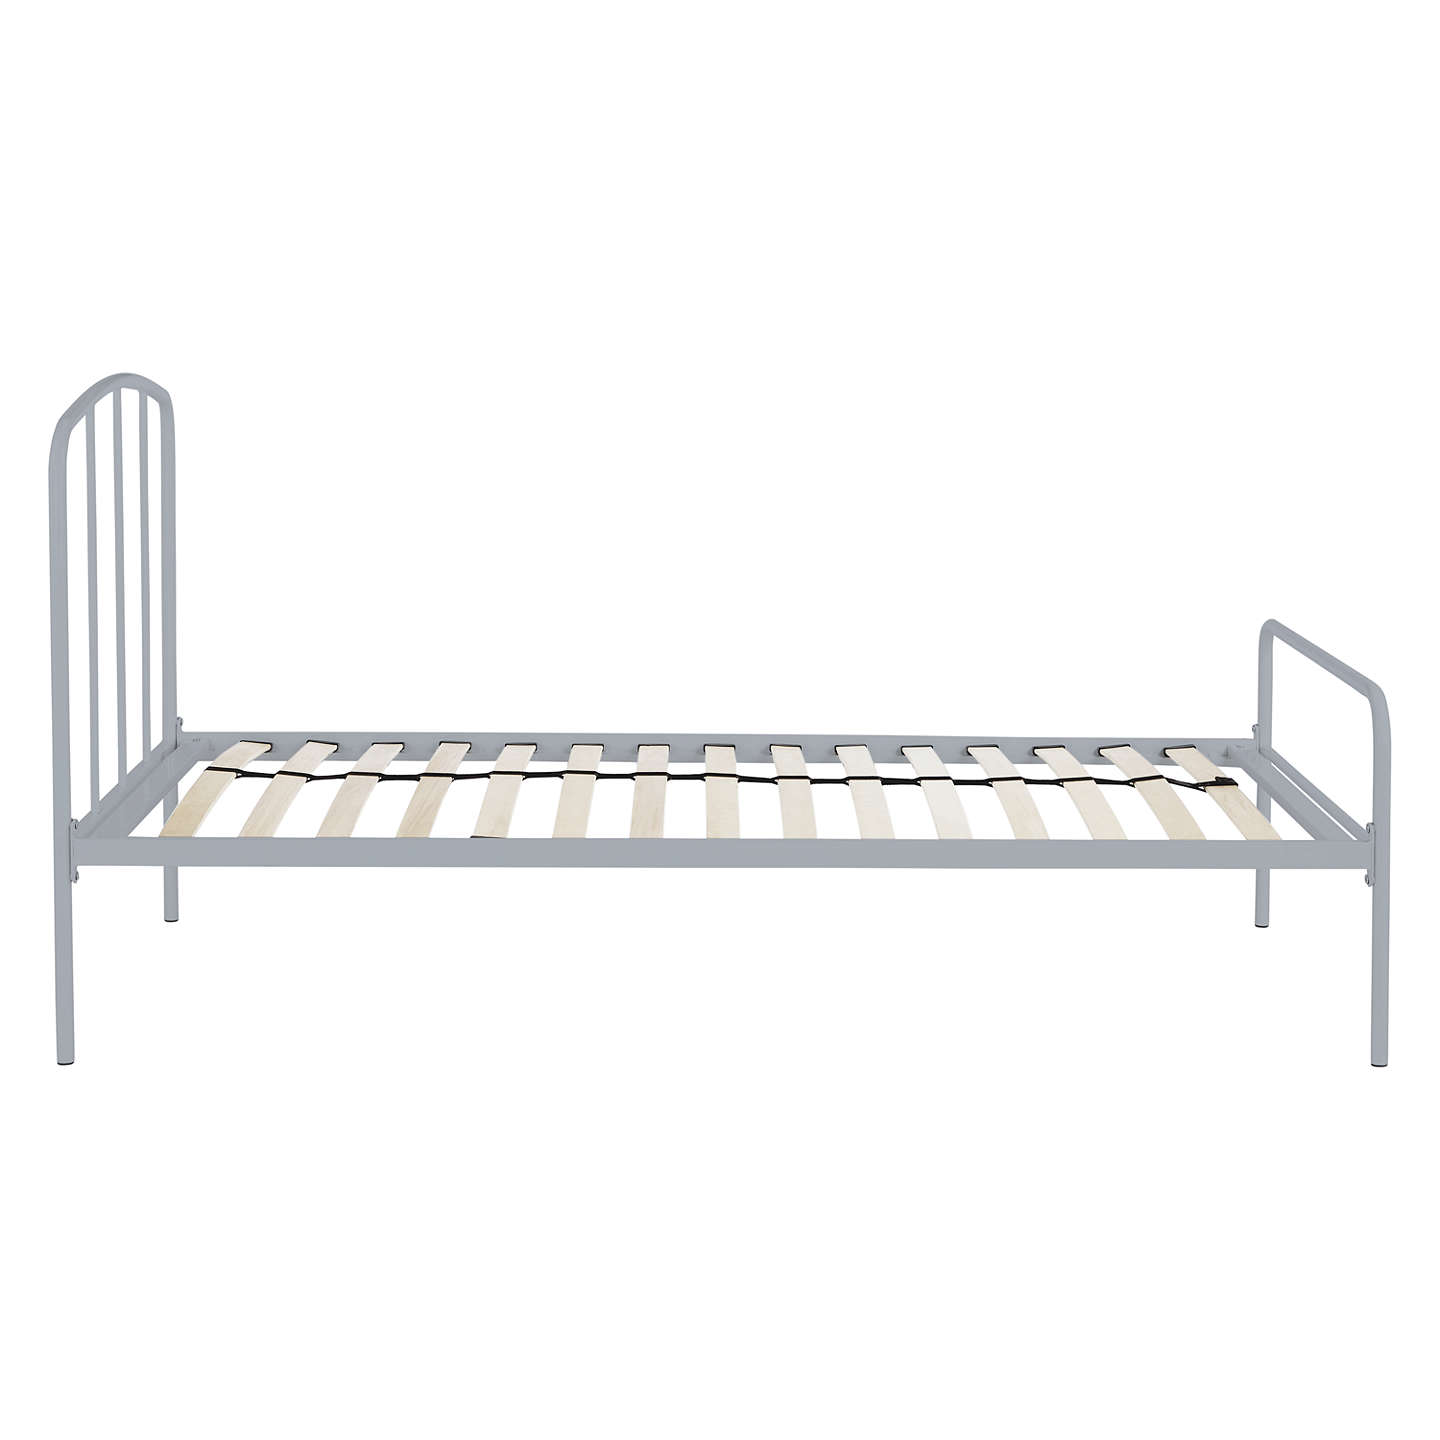 Buylittle home at John Lewis The Basics Alpha Metal Bed Frame, Single, Grey Online at johnlewis.com